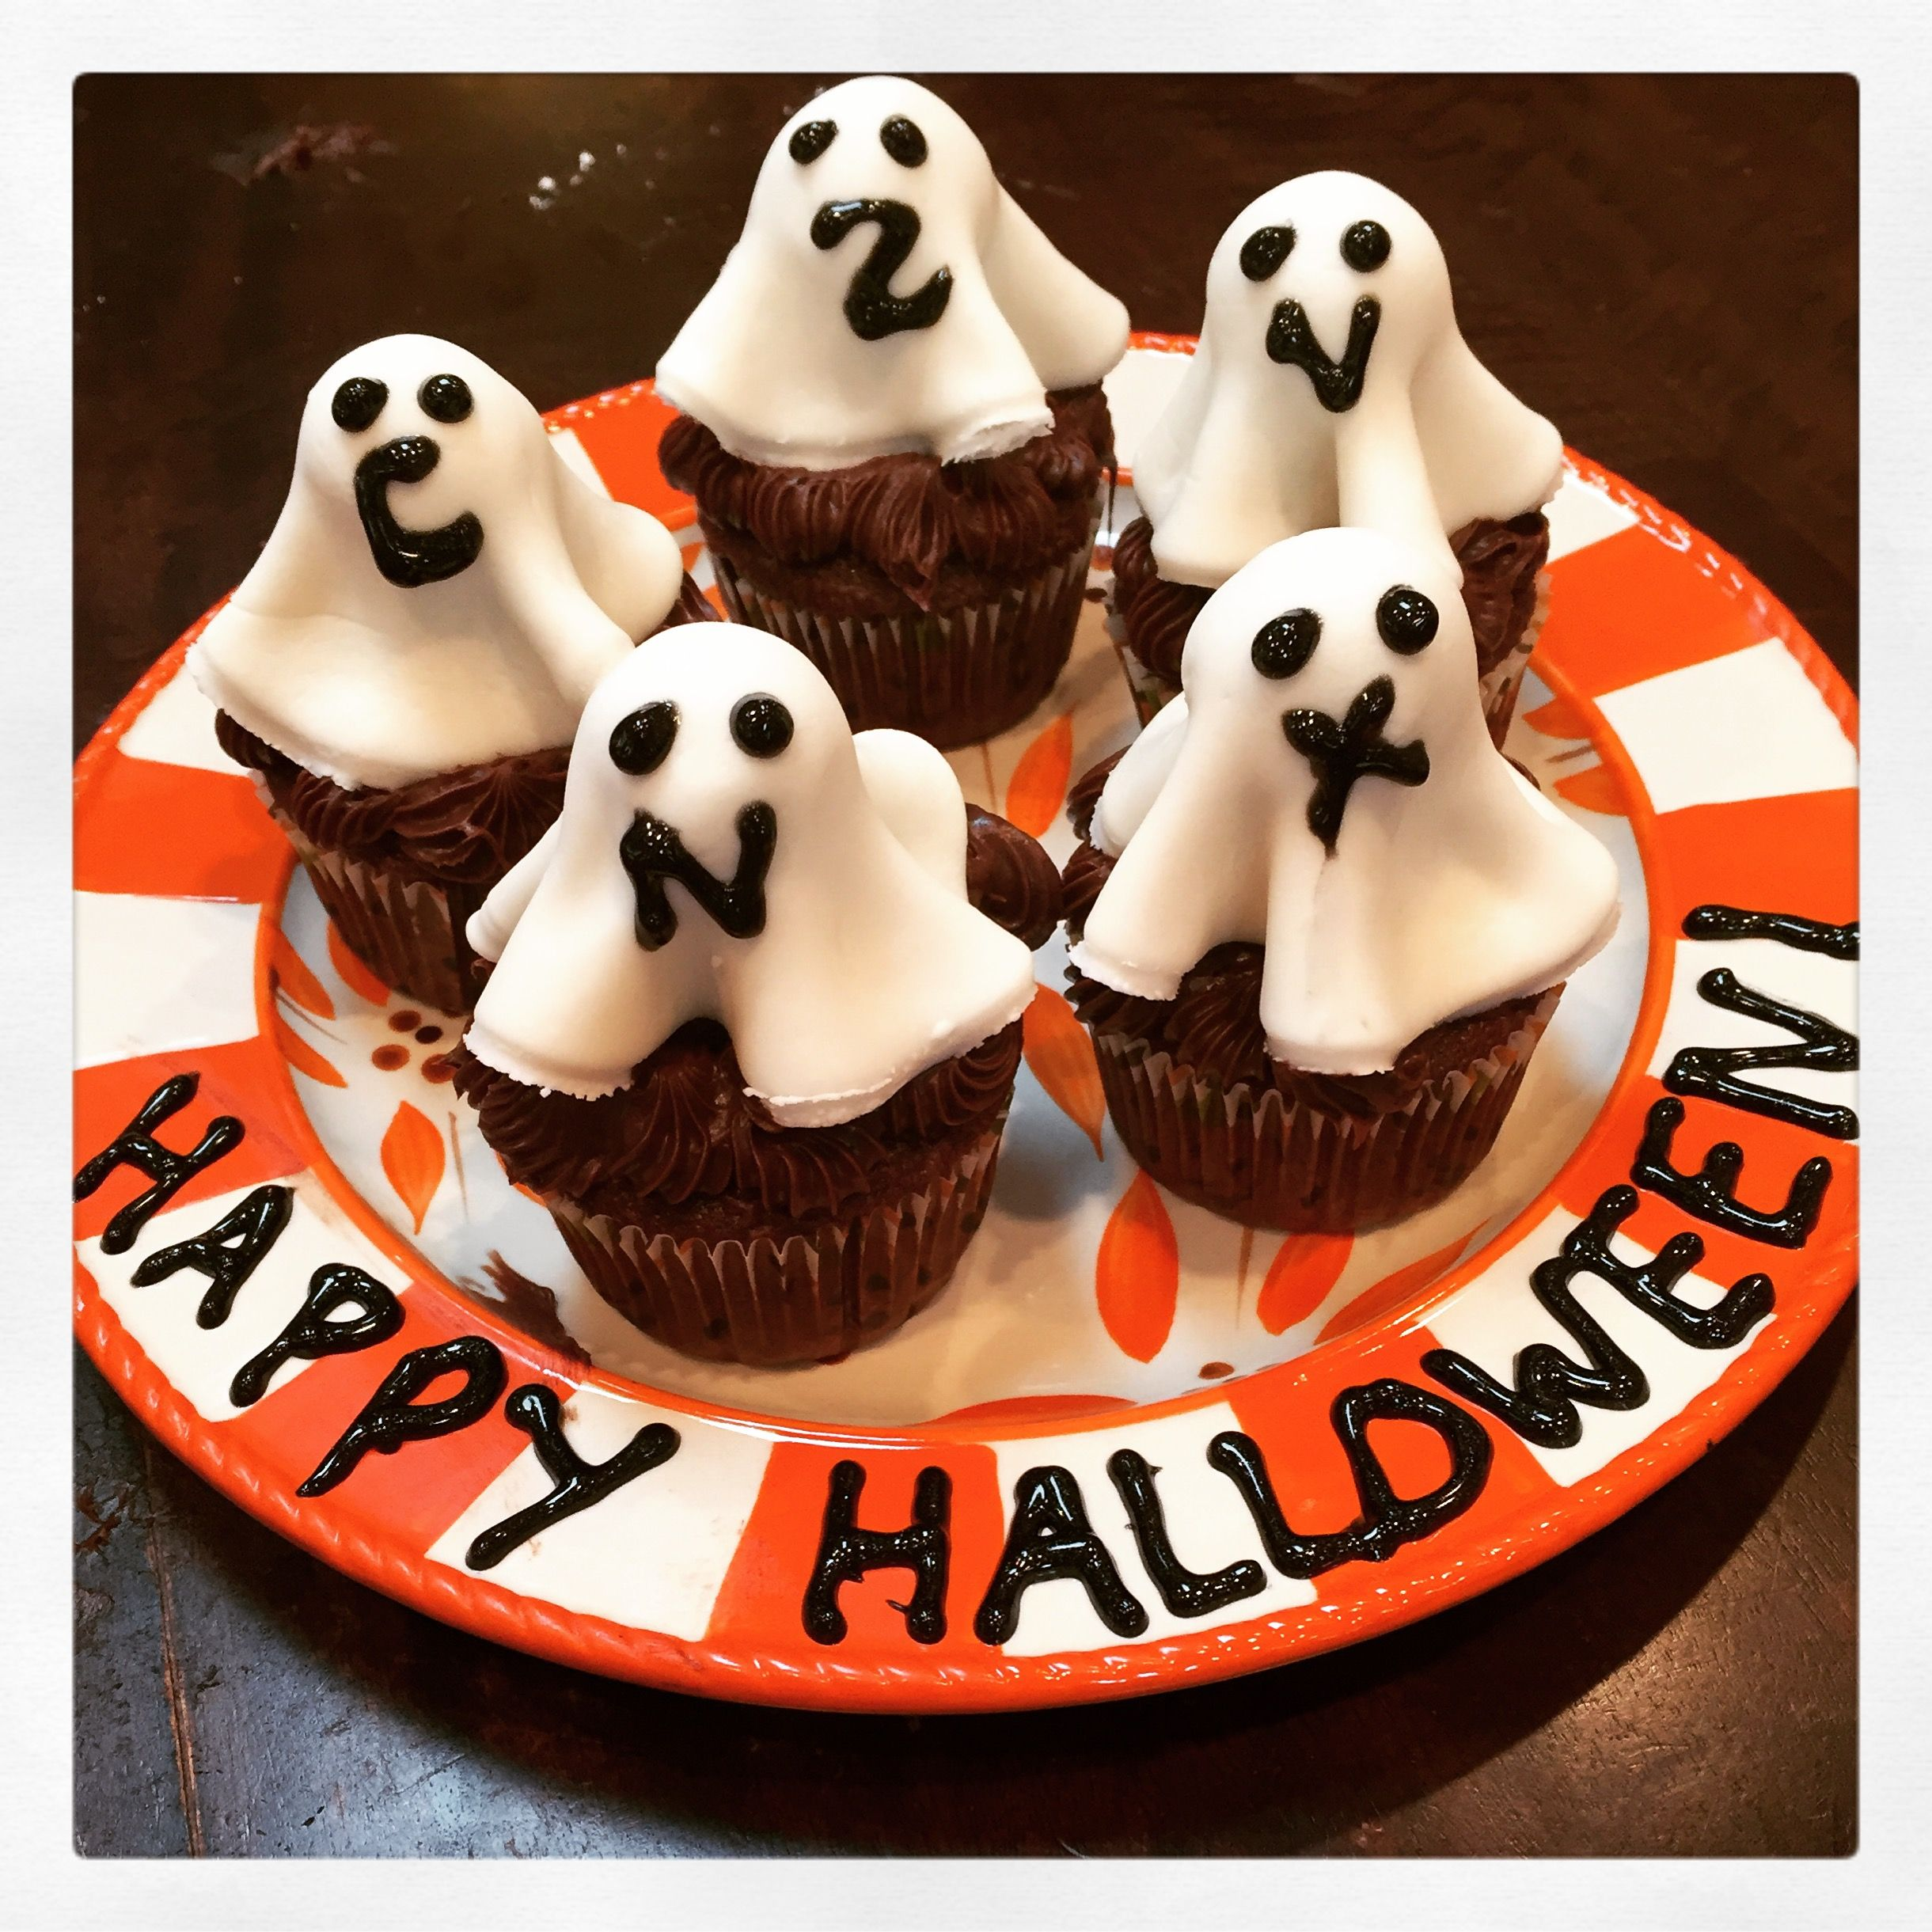 White fondant ghosts on dum dums over chocolate cupcakes for Halloween. 519bd3d1fadd